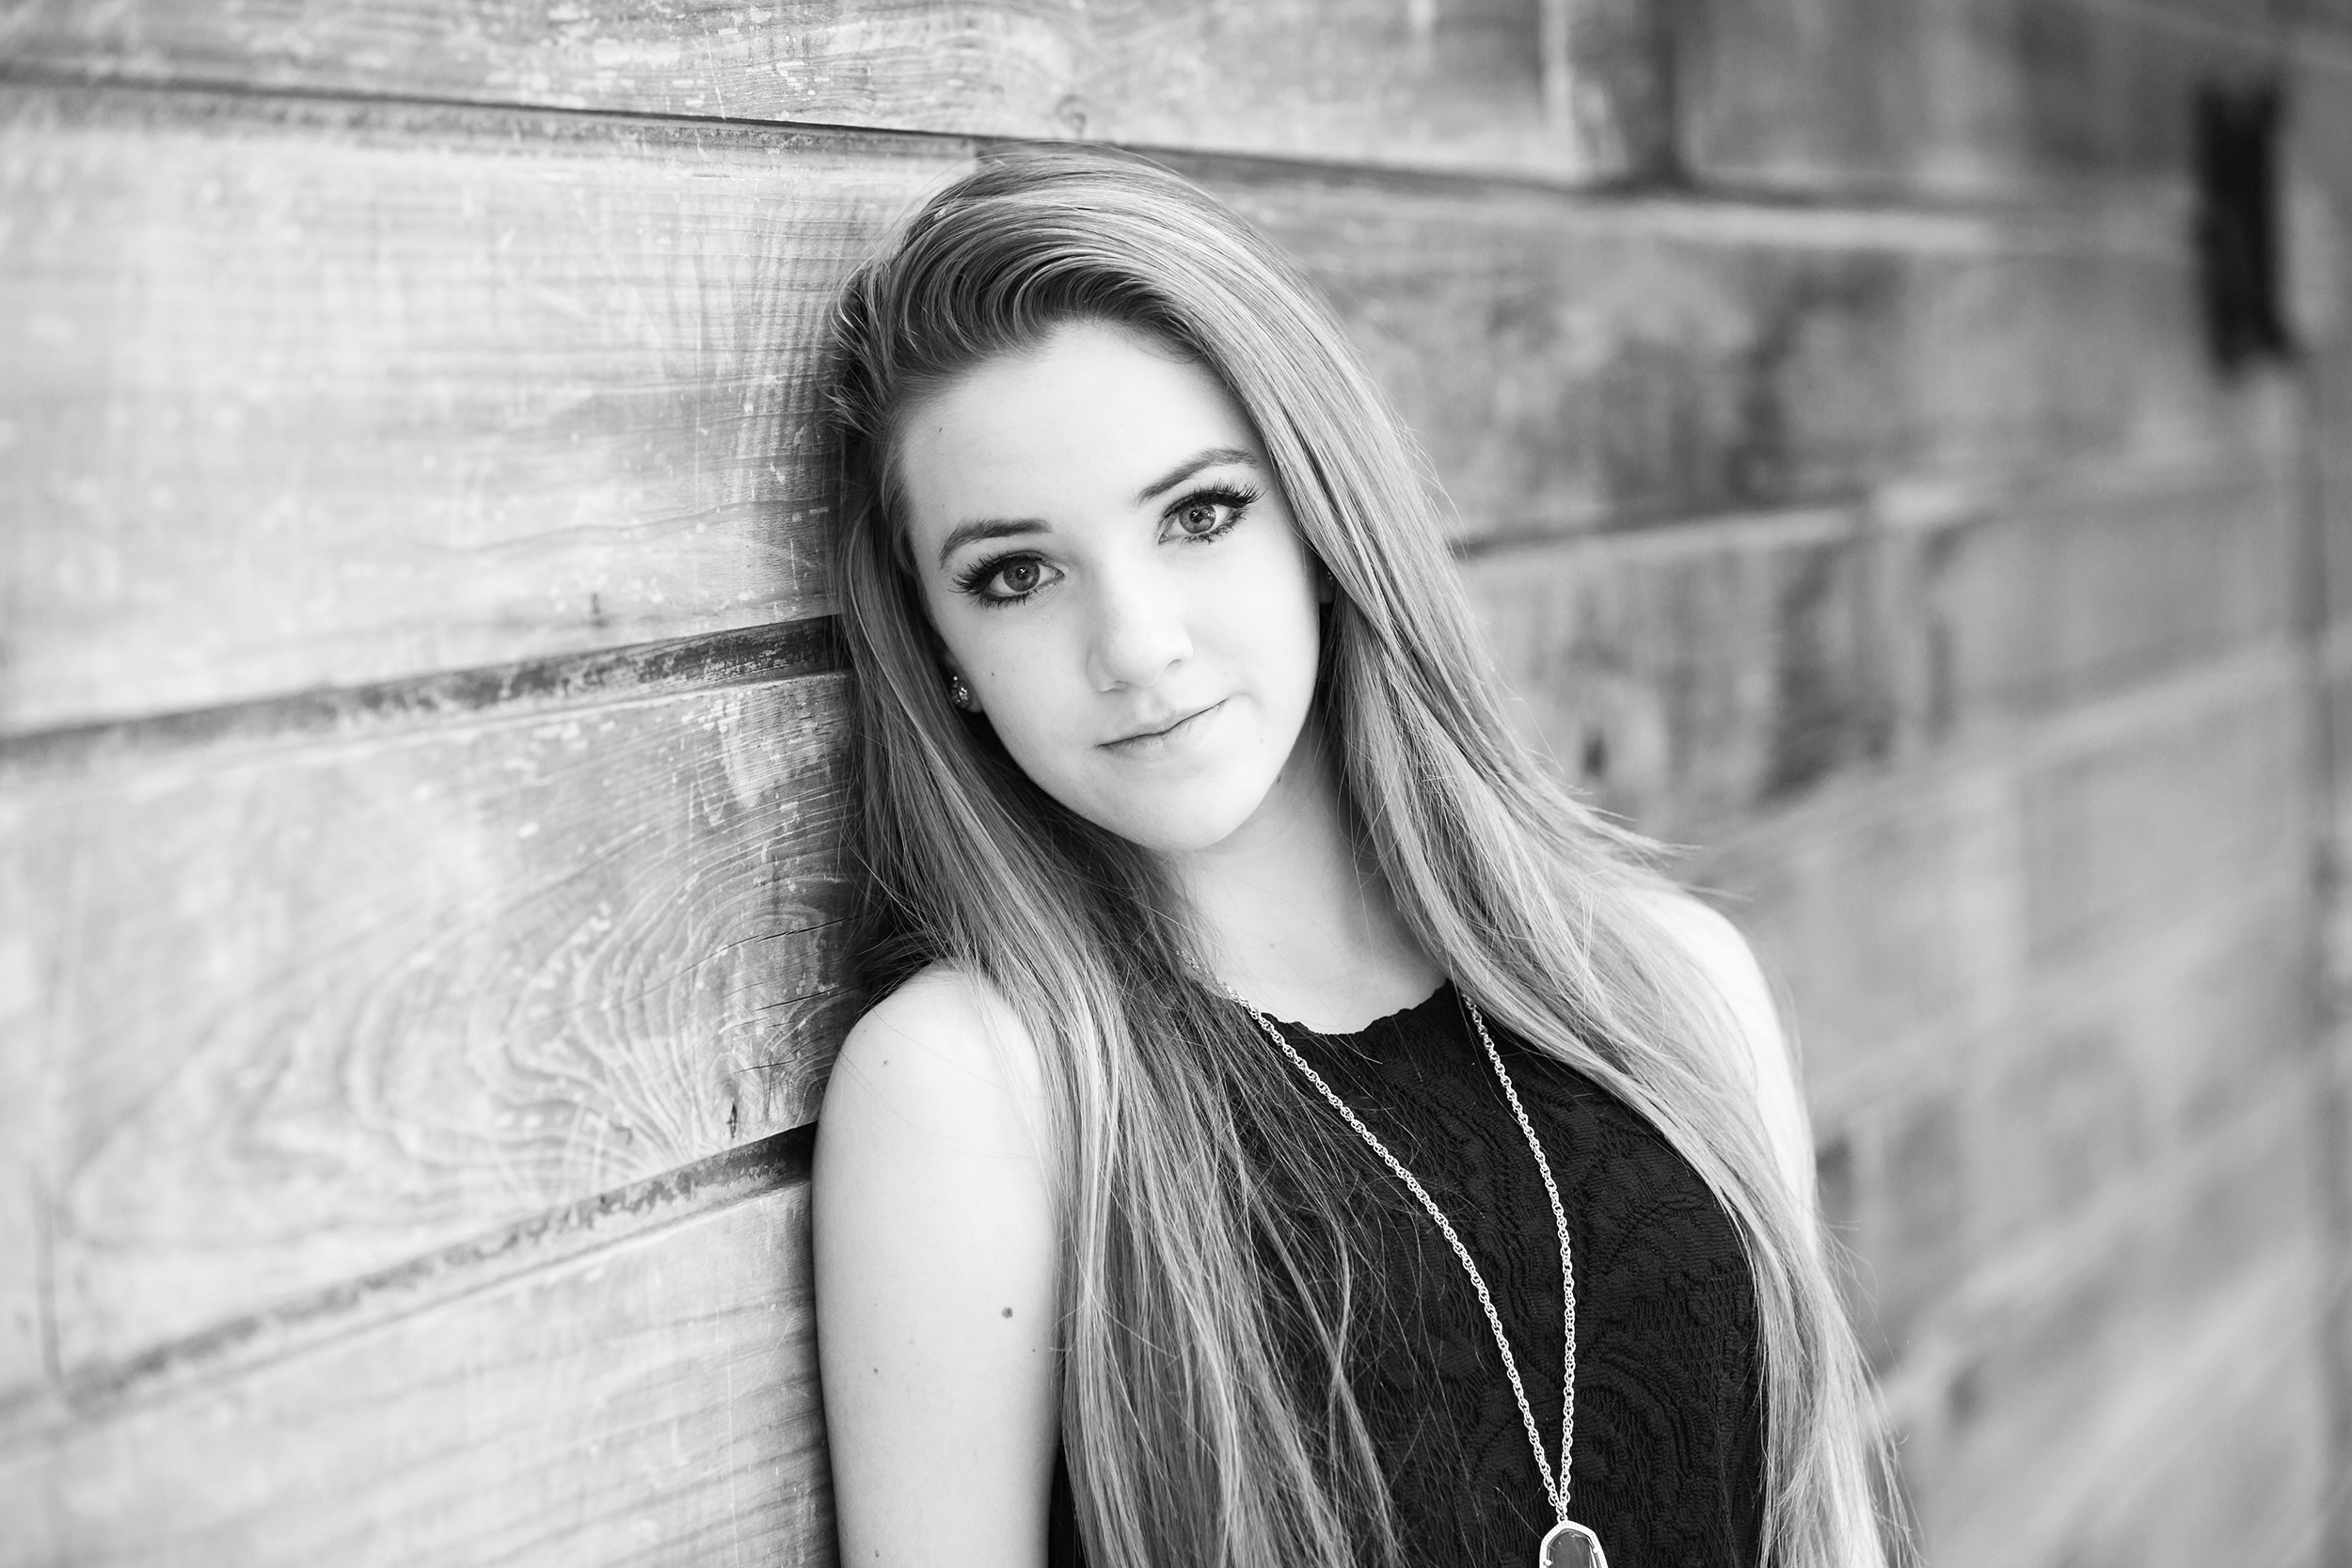 Teen-girl-bw-leaning-wood-wall.jpg